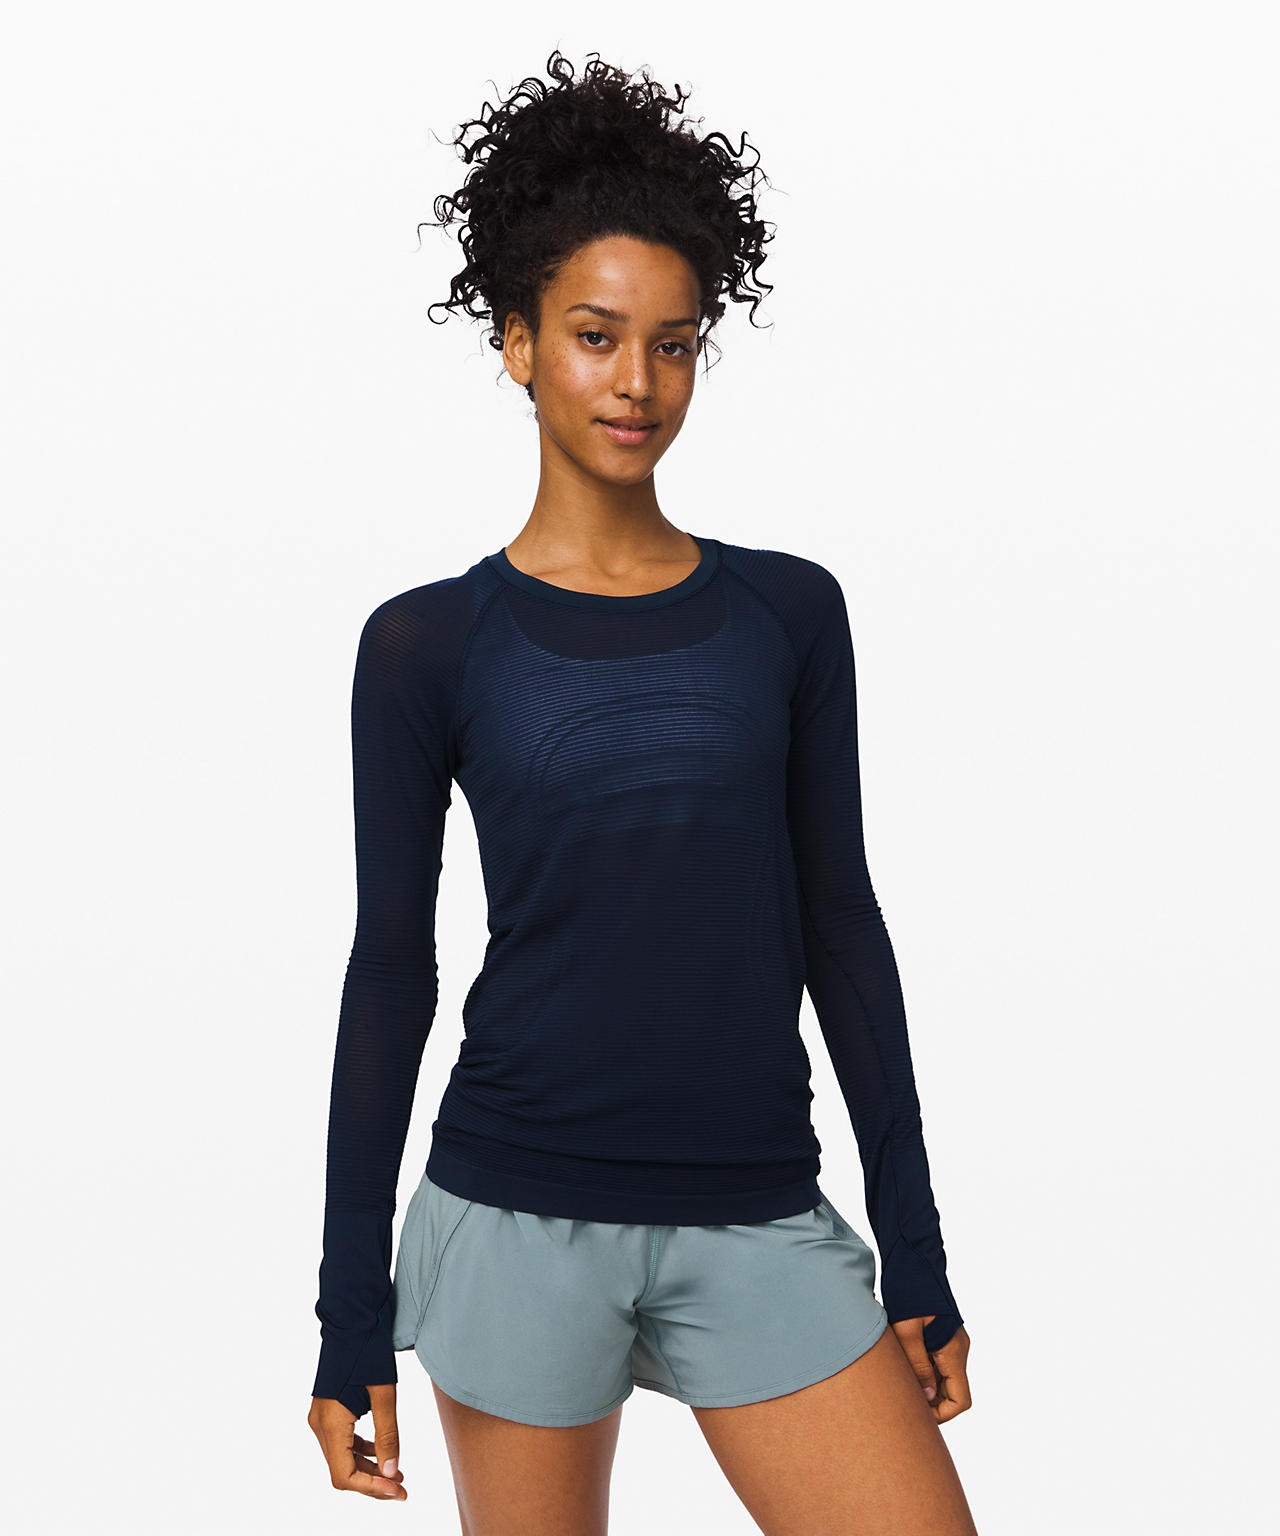 Swiftly Speed Long Sleeve  Sheer Stripe, Lululemon Upload